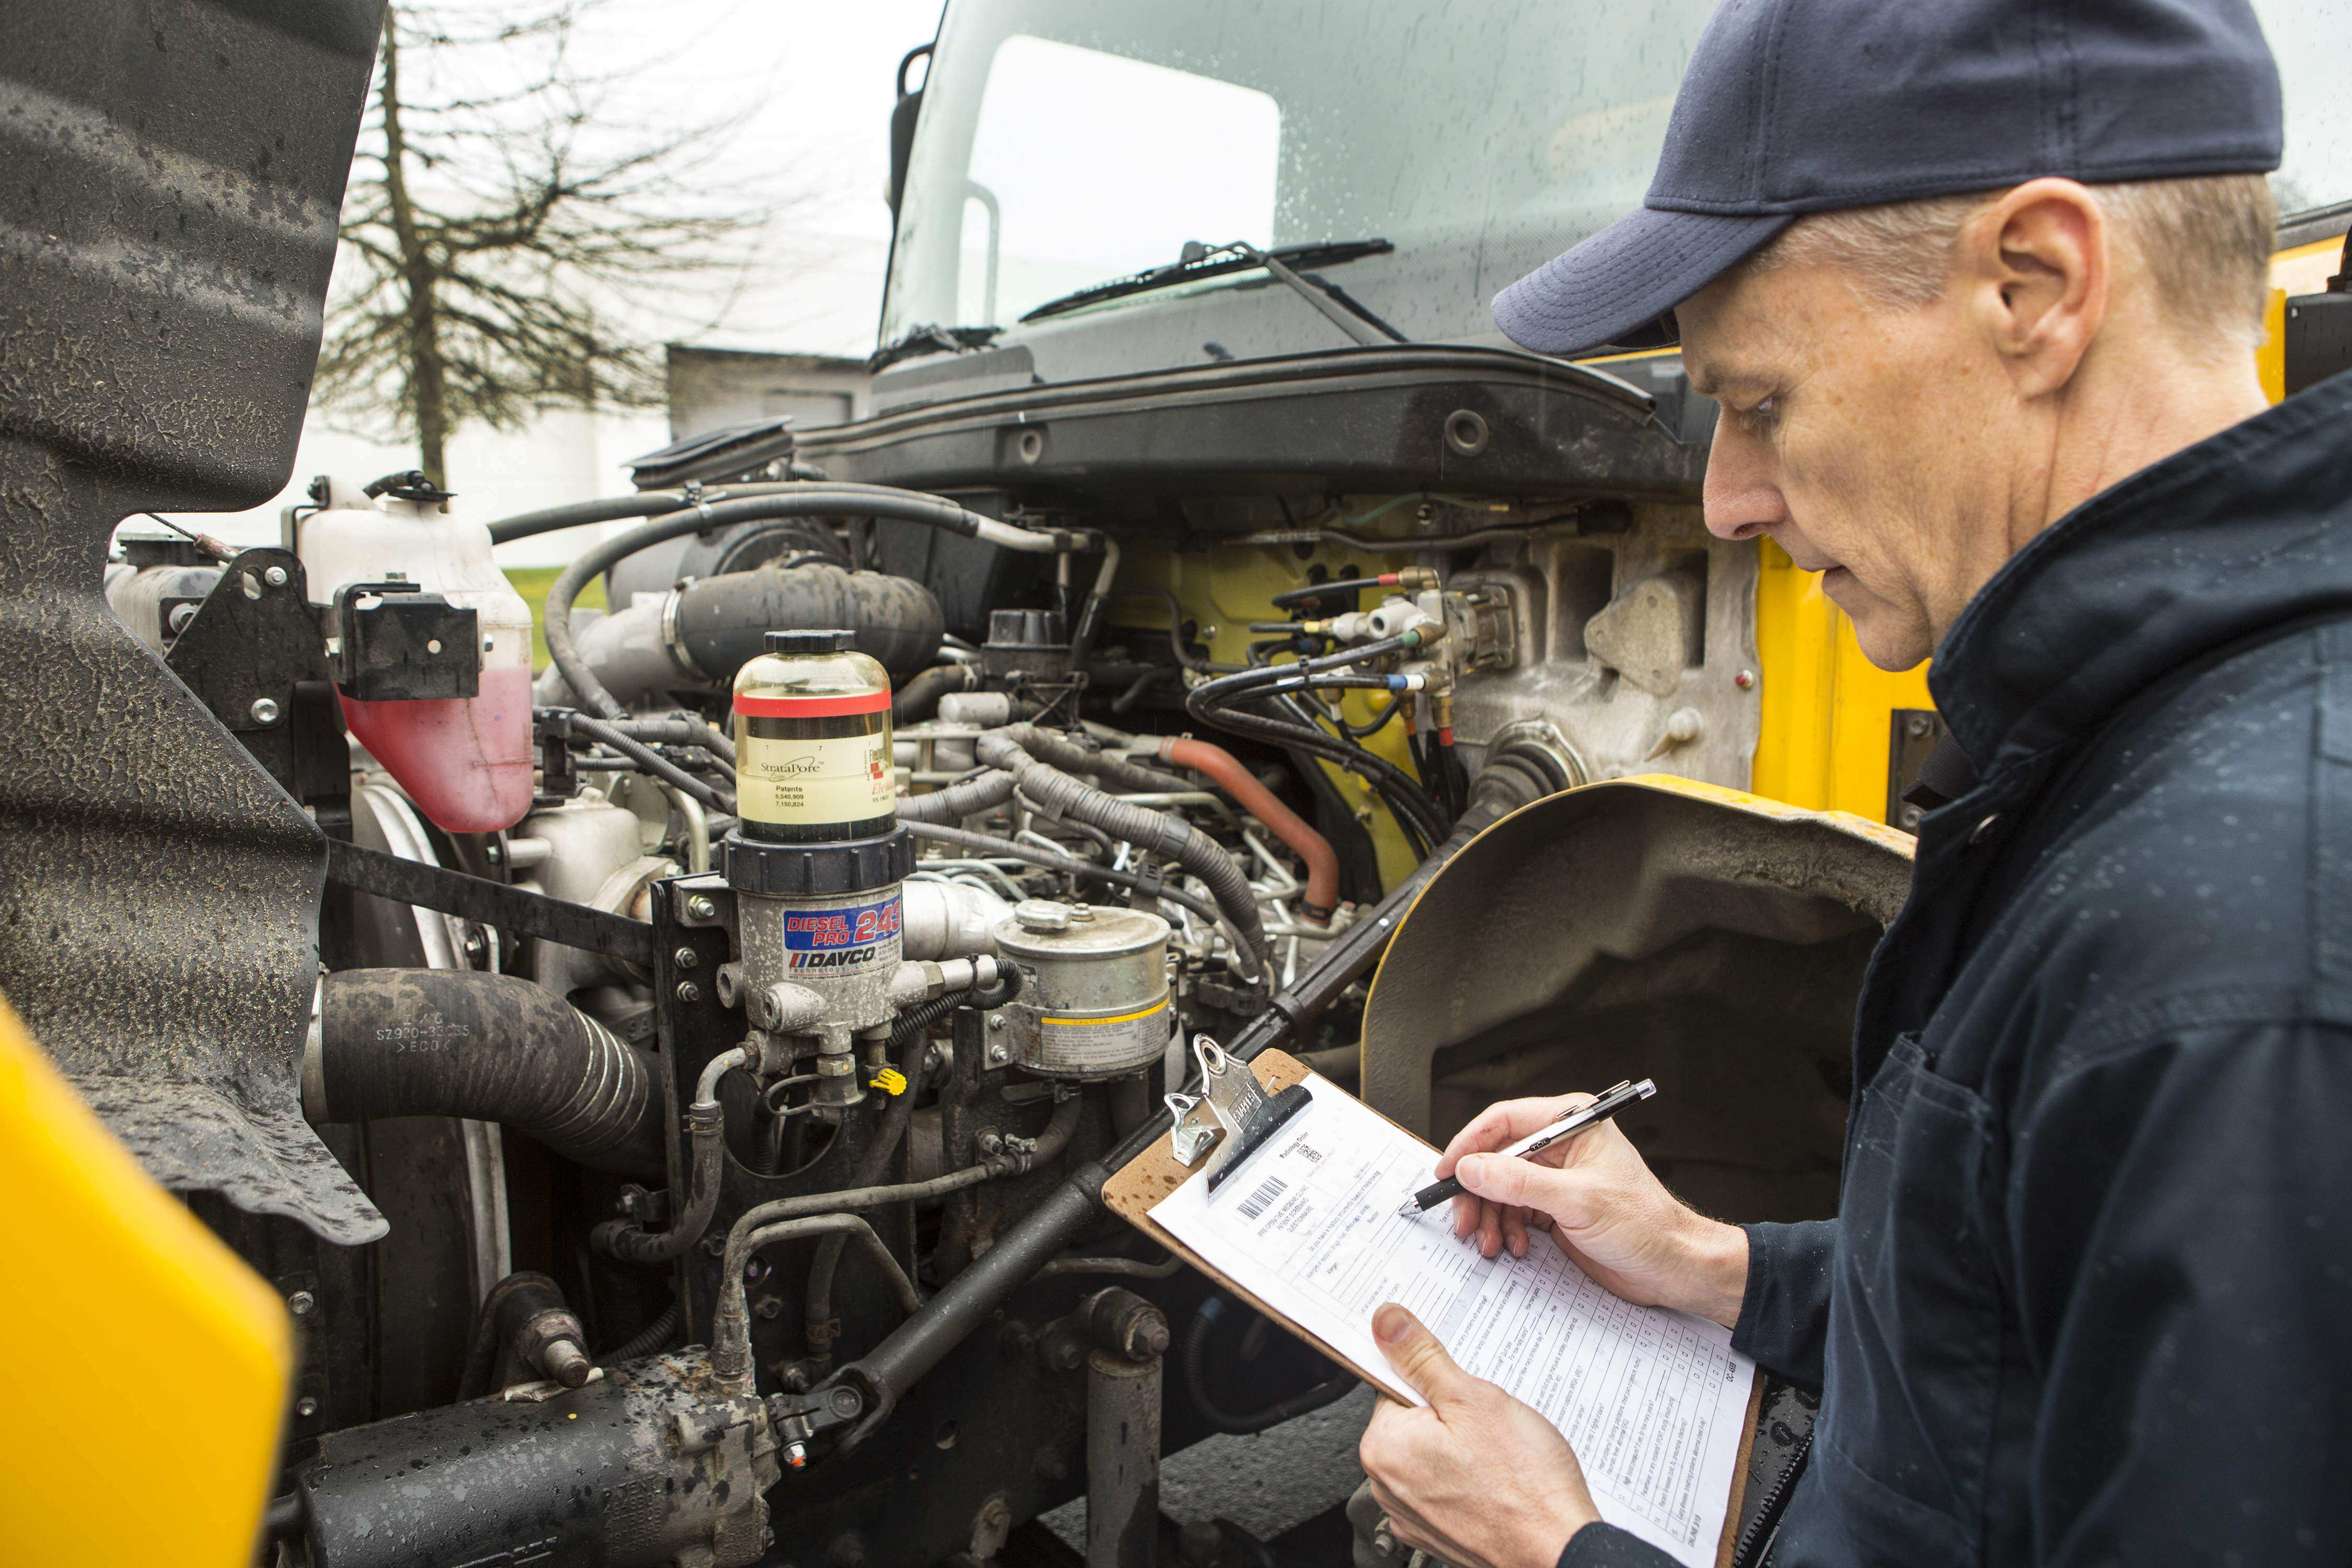 Say goodbye to no-defect inspection reports — FMCSA's officially eliminated them